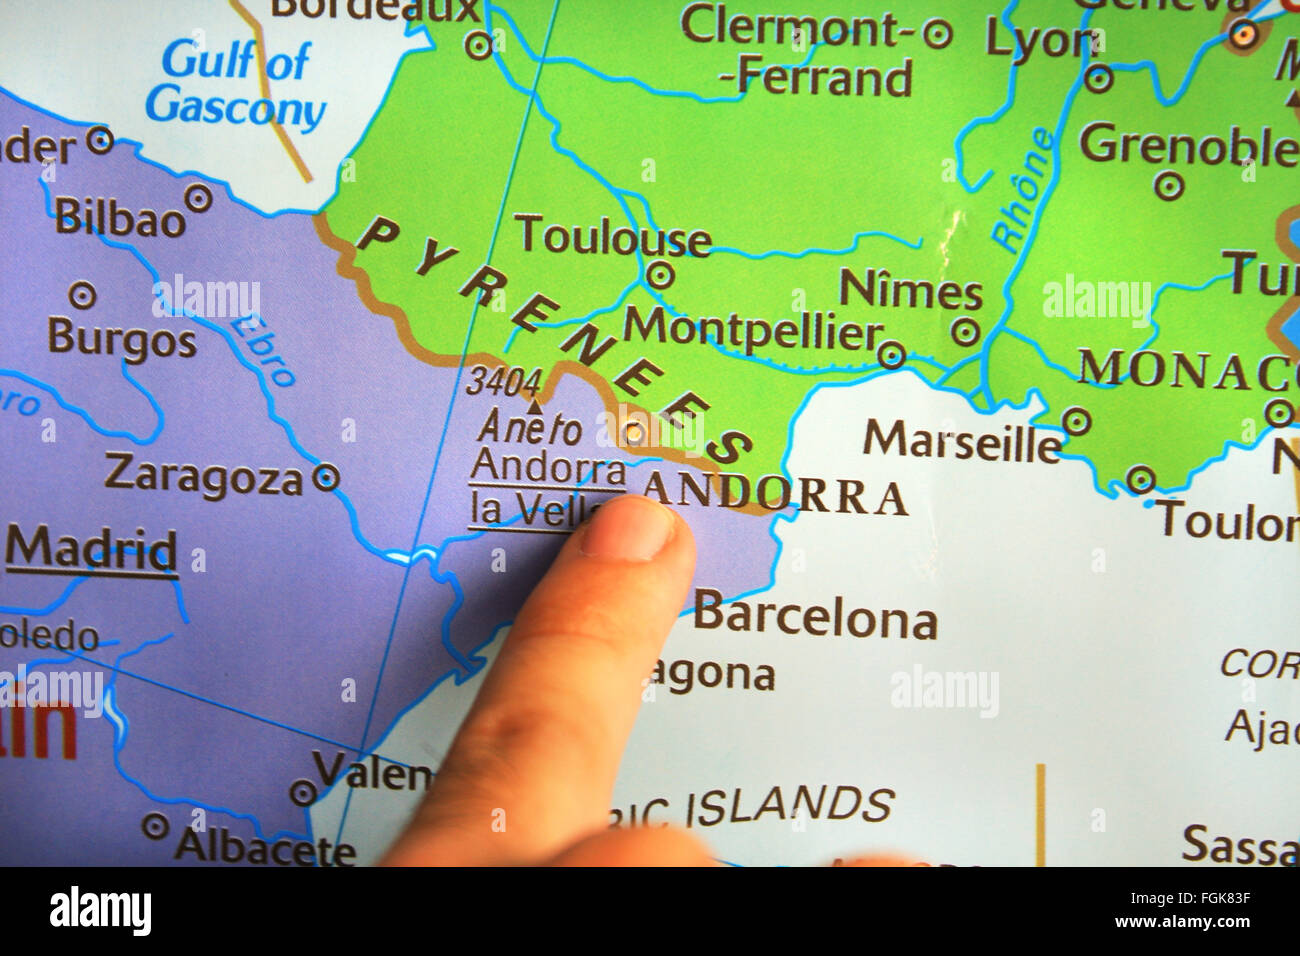 Kid Showing FranceSpain Border On The Map Stock Photo Royalty - Map of france and spain